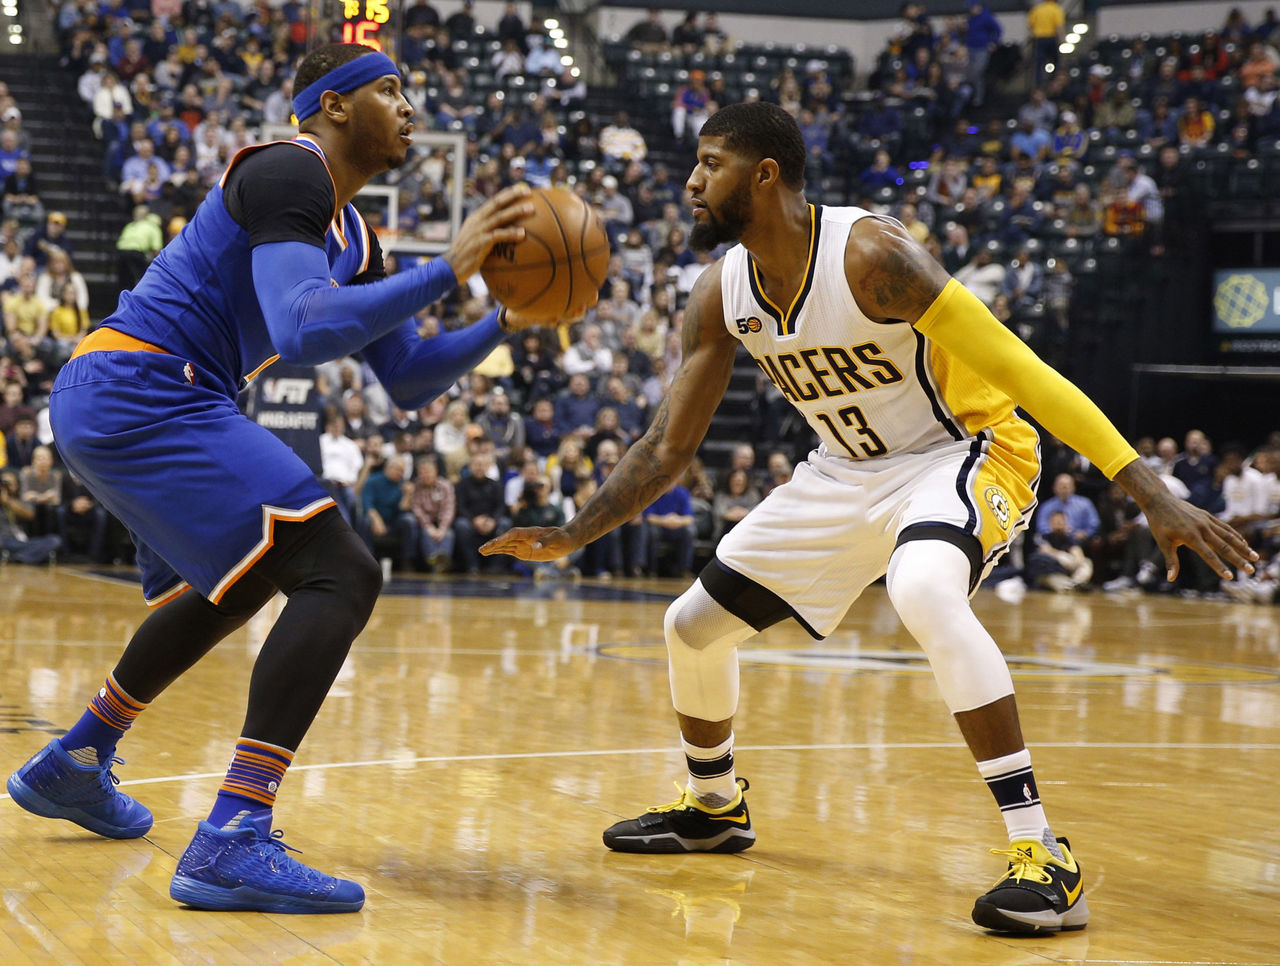 Cropped 2017 01 24t020547z 963248541 nocid rtrmadp 3 nba new york knicks at indiana pacers